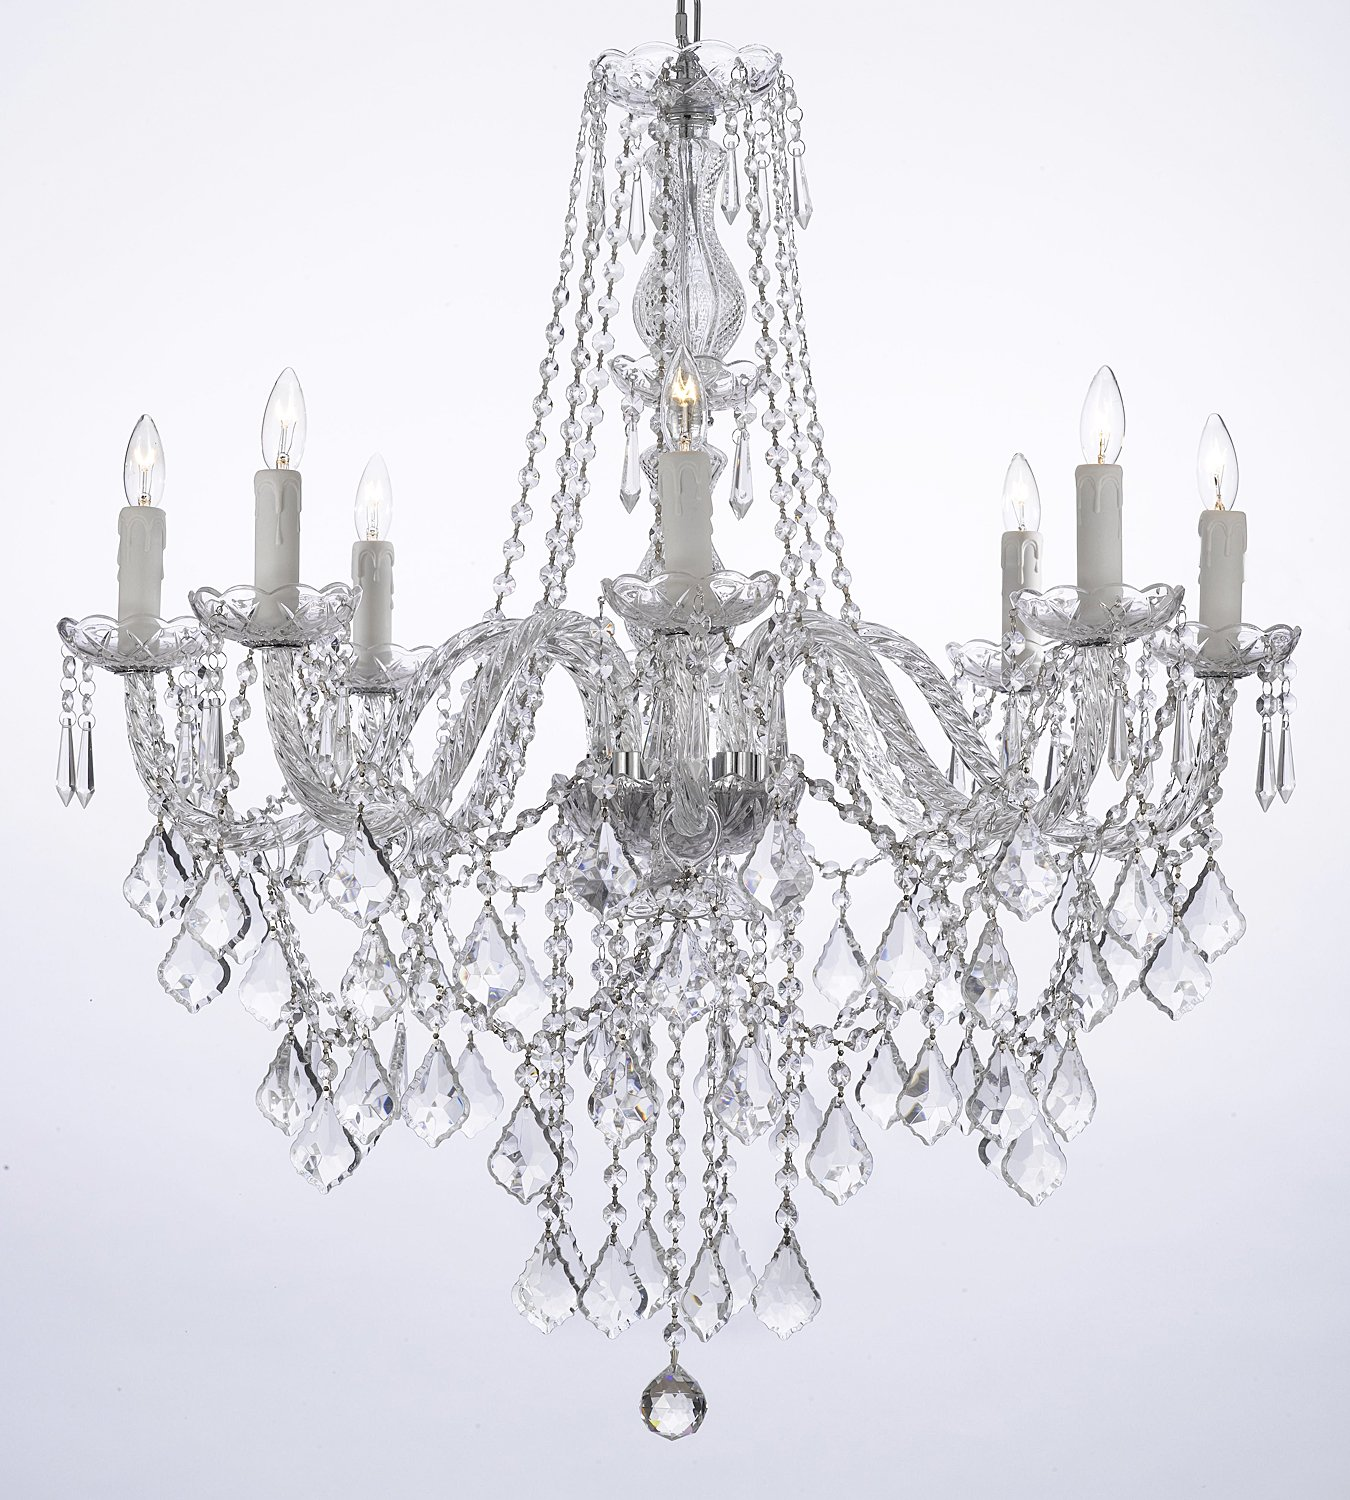 Crystal Chandelier Lighting 33ht X 28wd 8 Lights Fixture Pendant Ceiling Lamp by JAC D'LIGHTS